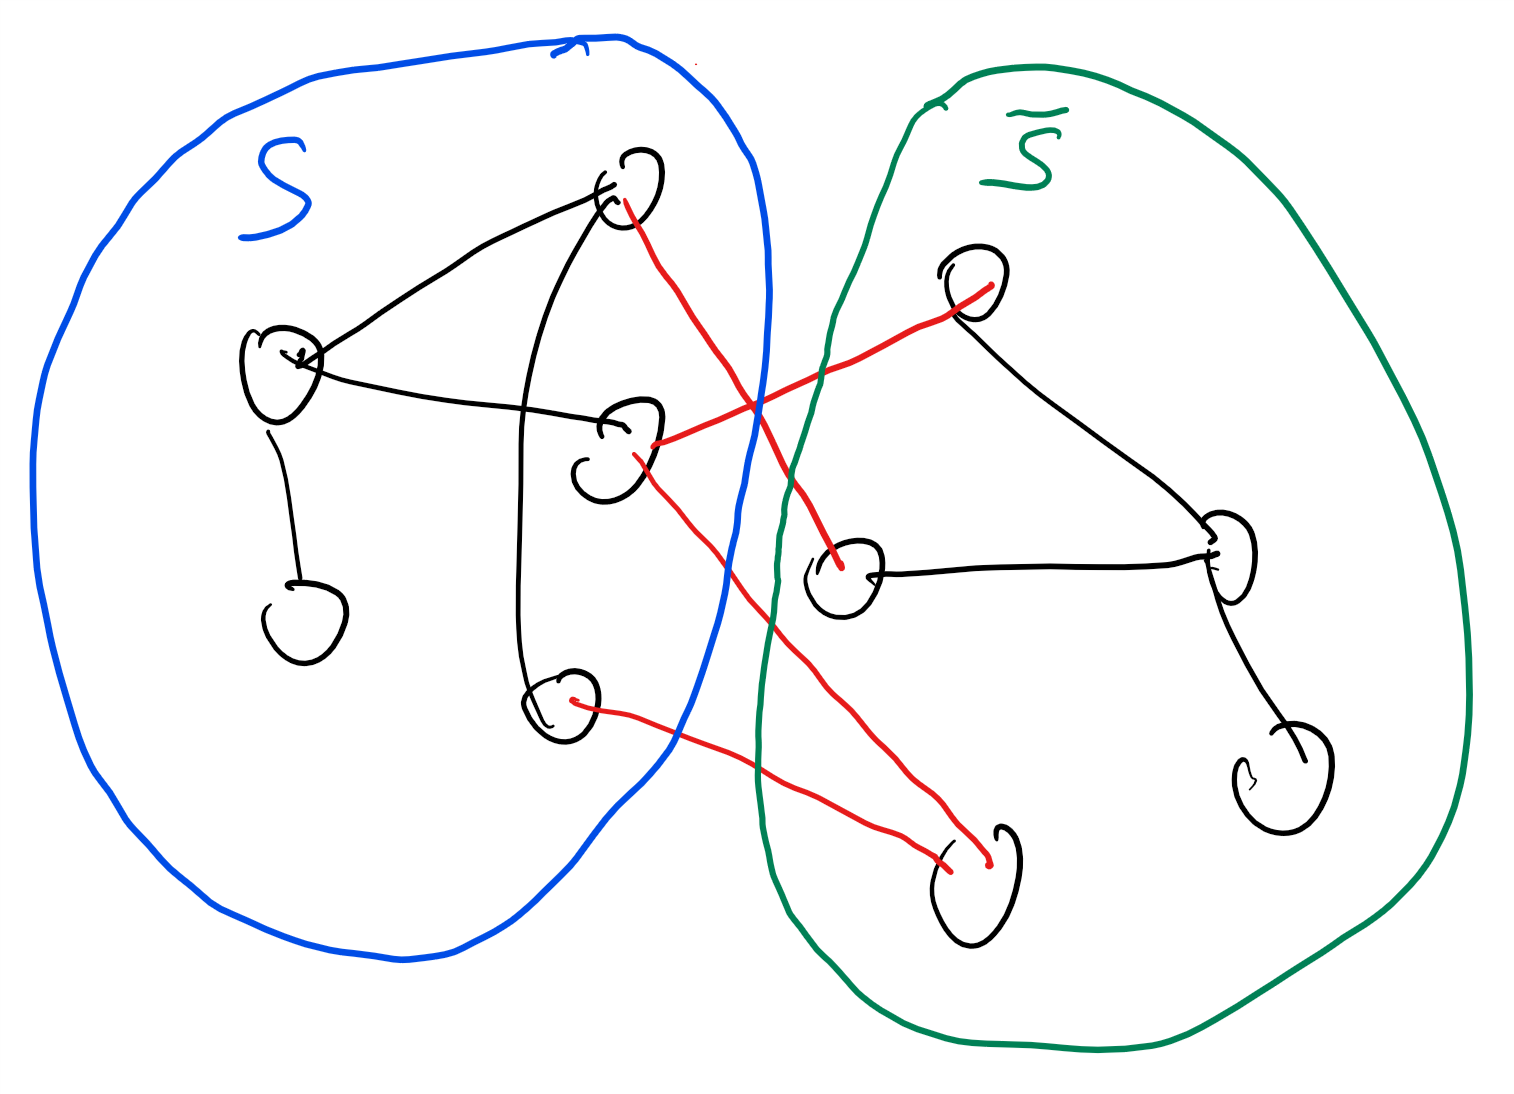 A cut in a graph G=(V,E) is simply a subset S of its vertices. The edges that are cut by S are all those whose one endpoint is in S and the other one is in \overline{S} = V \setminus S. The cut edges are colored red in this figure.